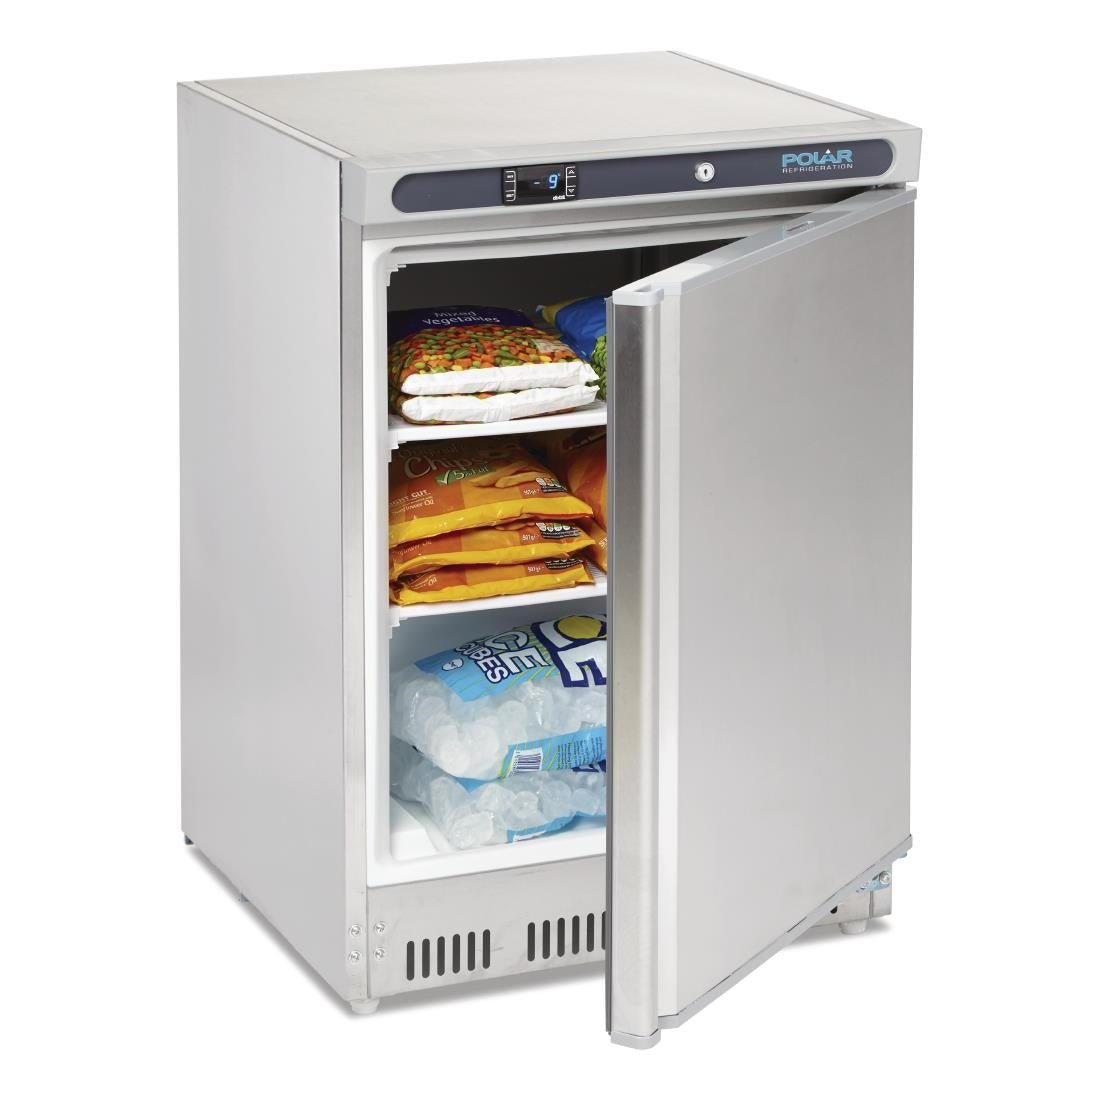 Polar CD081-A Single Door Undercounter Freezer - Stainless Steel - Catering Sale